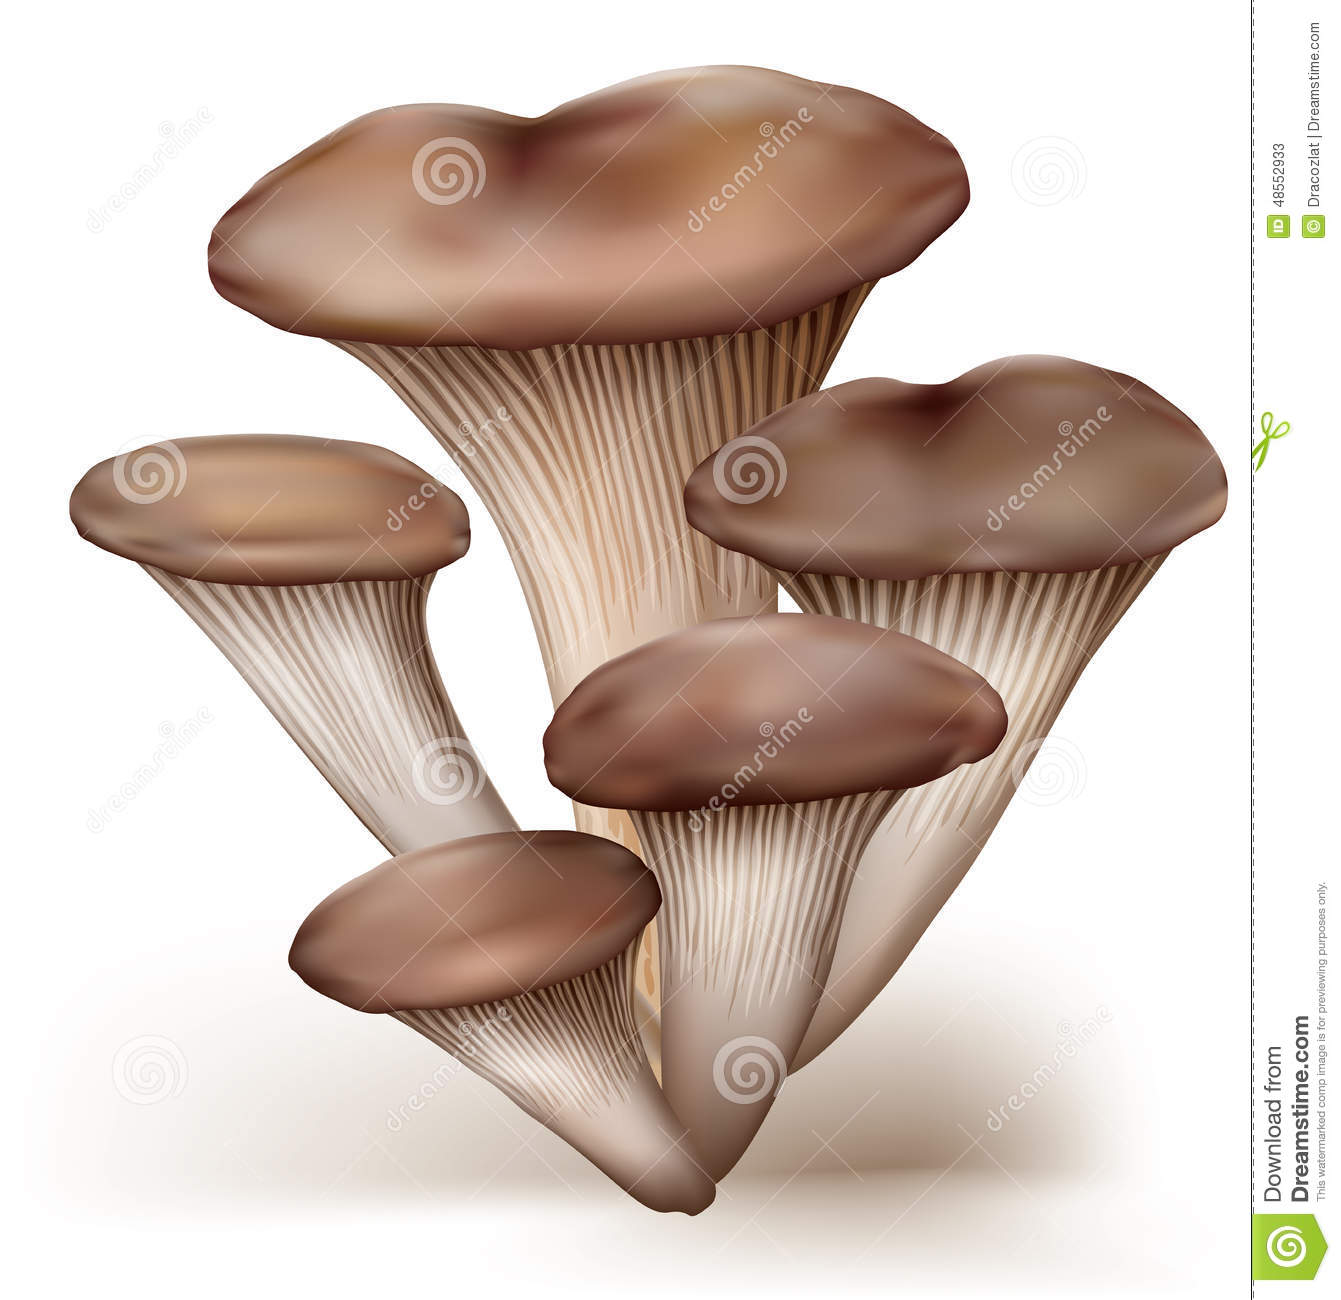 Kings Oyster Mushroom Stock Illustrations.